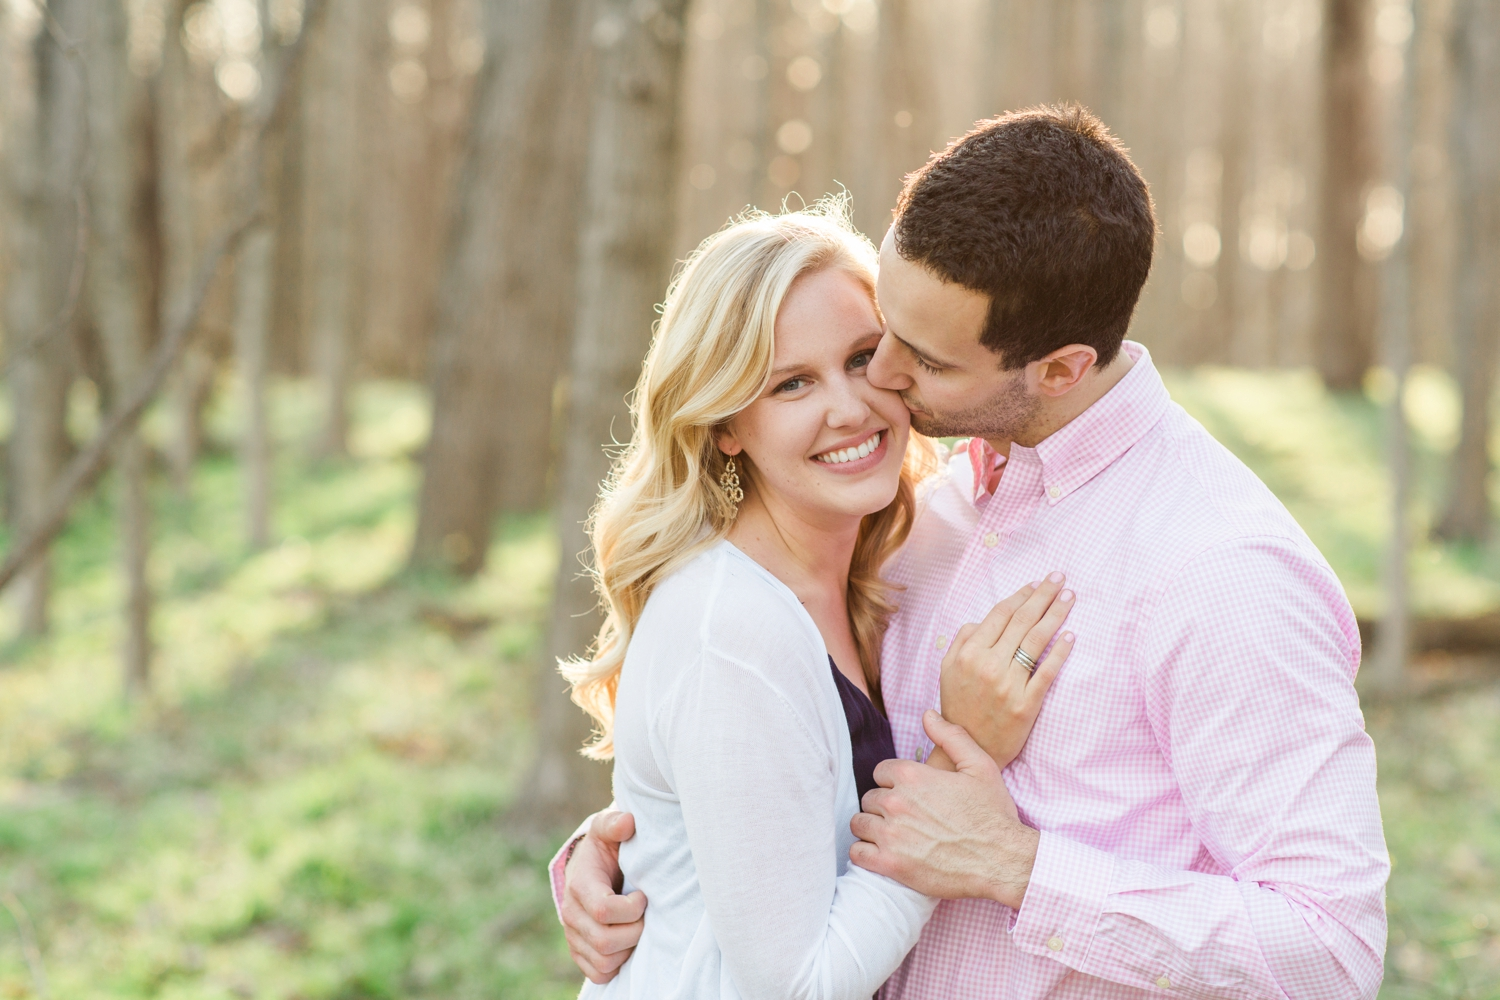 indianapolis_wedding_photographer_golden_hour_engagement_chloe_luka_photography_6117.jpg